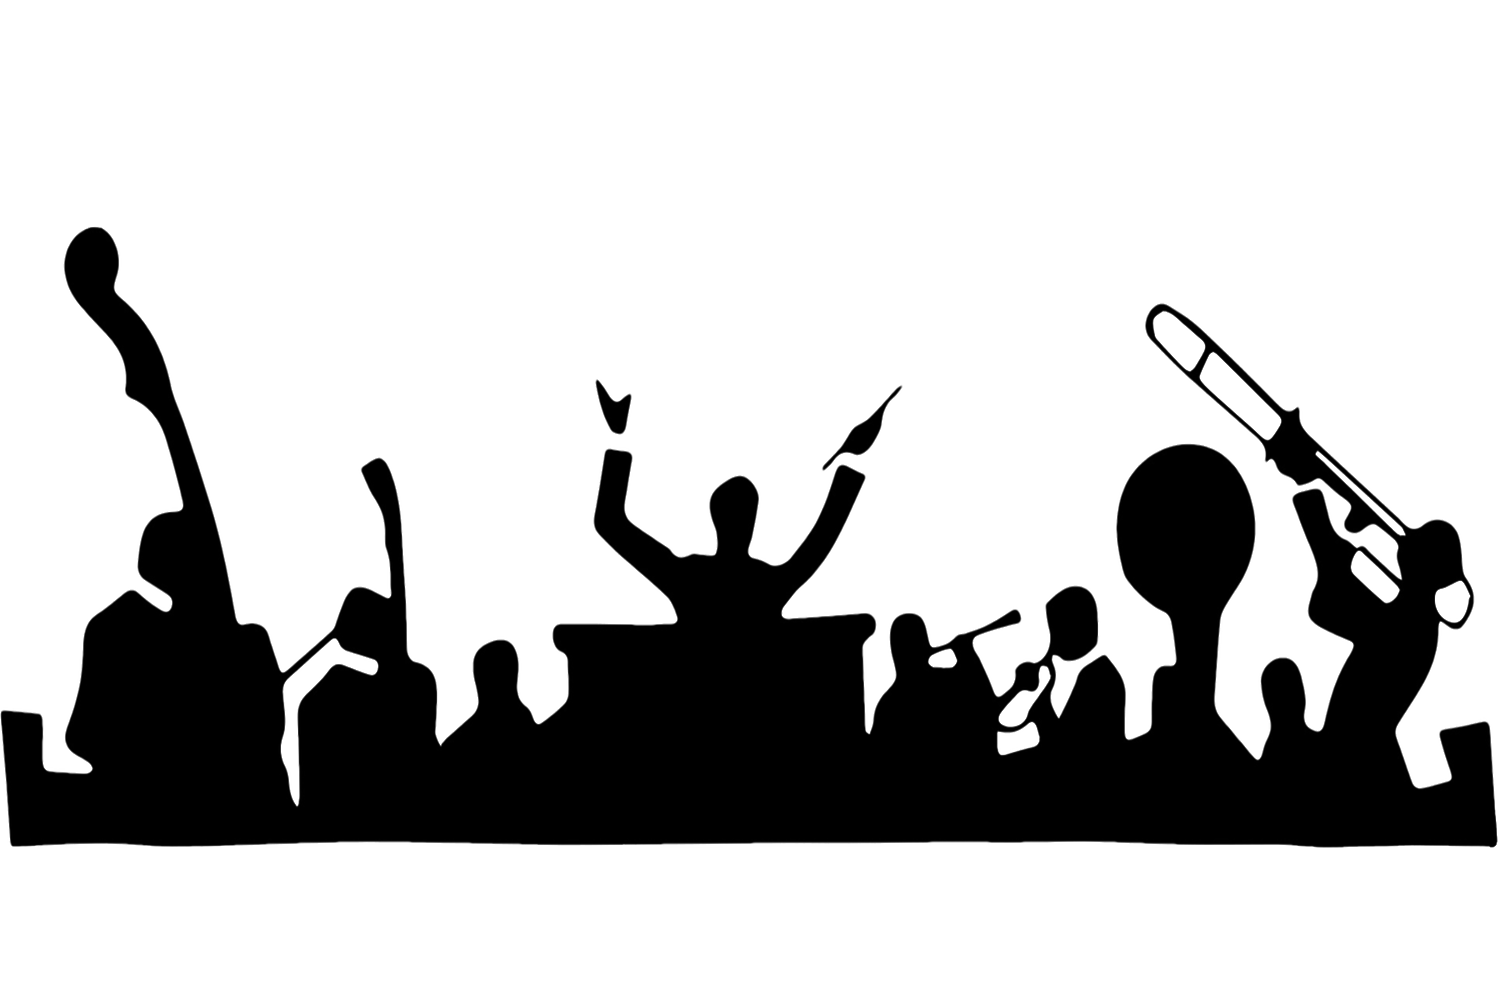 Band o rama concert. Crowd clipart cheered